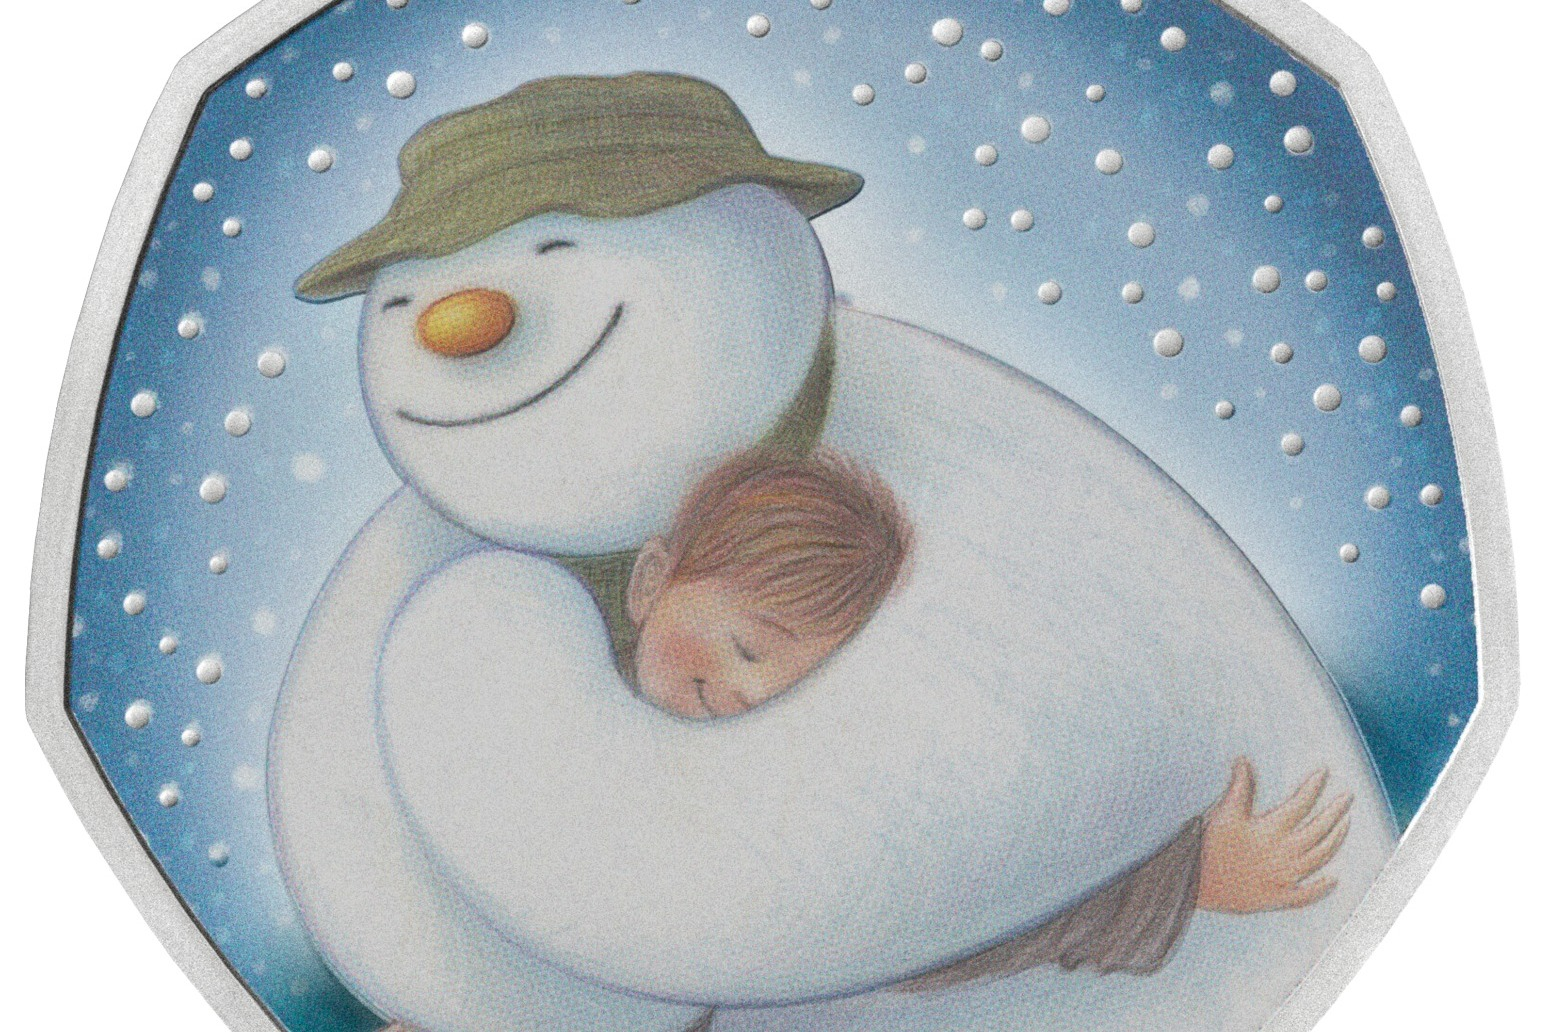 New commemorative 50p coin celebrates The Snowman